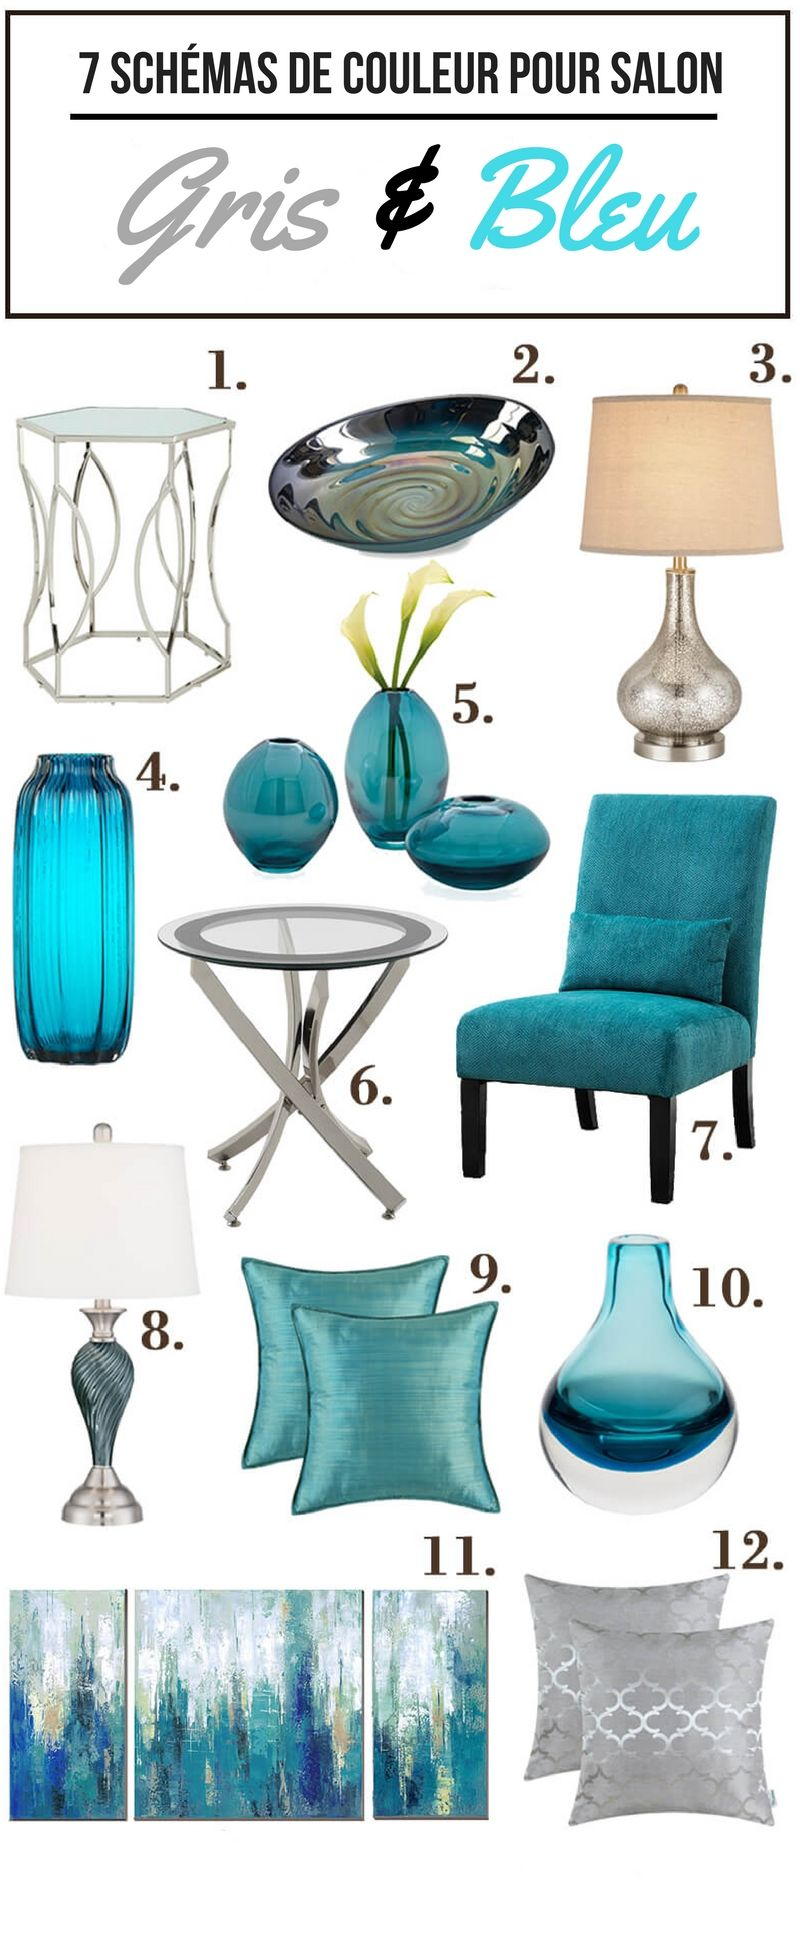 7 magnifiques schemas de couleur pour votre salon home decor living room color schemes room. Black Bedroom Furniture Sets. Home Design Ideas